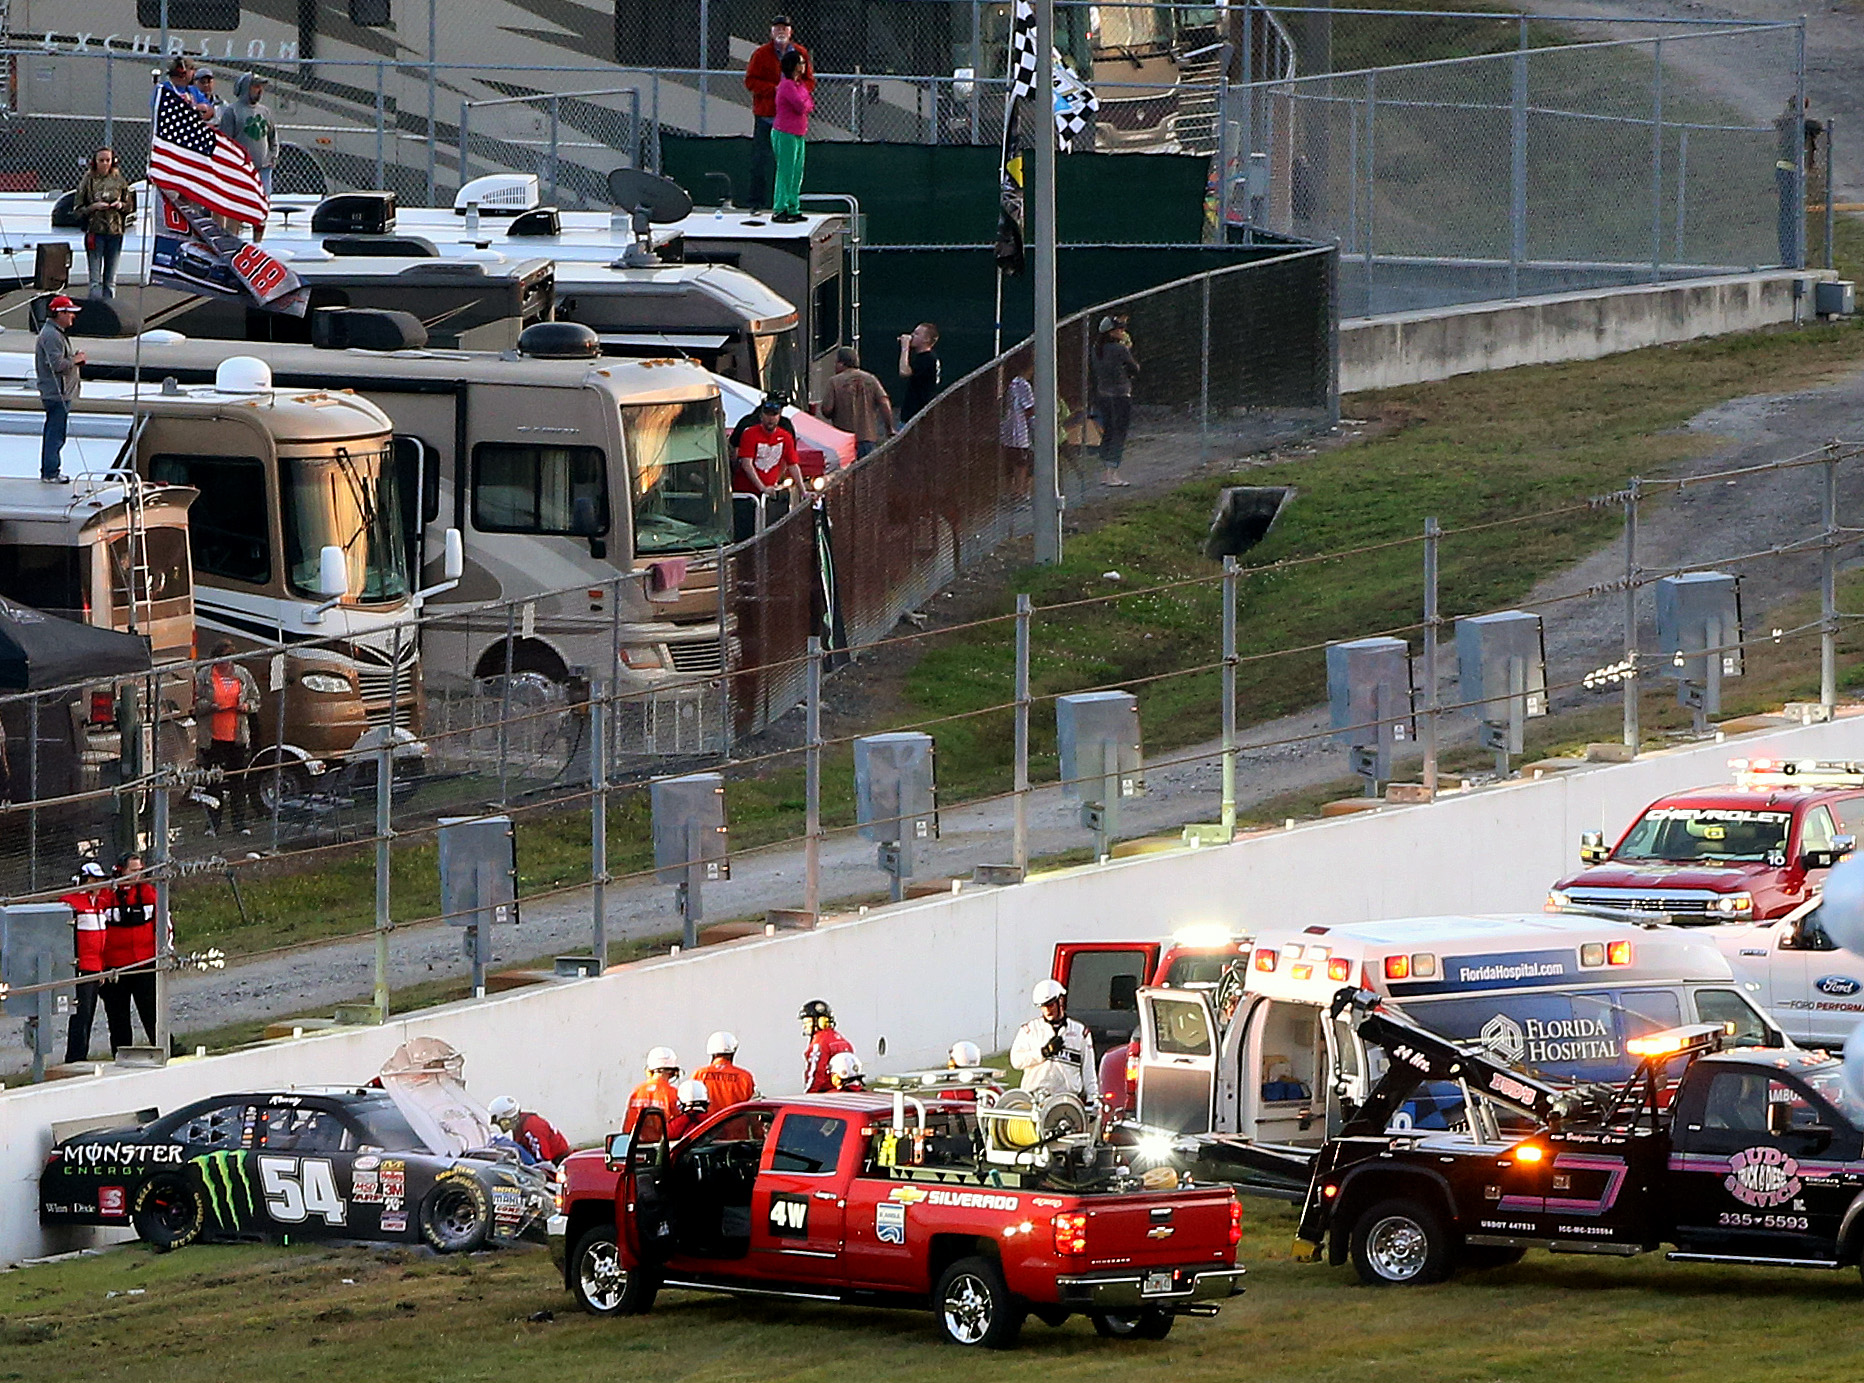 DAYTONA BEACH, FL - FEBRUARY 21: The car of Kyle Busch, driver of the #54 Monster energy Toyota, is seen against a wall after crashing during the NASCAR XFINITY Series Alert Today Florida 300 at Daytona International Speedway on February 21, 2015 in Daytona Beach, Florida. Busch was transported to a local hospital with a lower body injury and will not race in the NASCAR Sprint Cup Series Daytona 500 tomorrow. (Photo by Brian Lawdermilk/Getty Images) | Getty Images